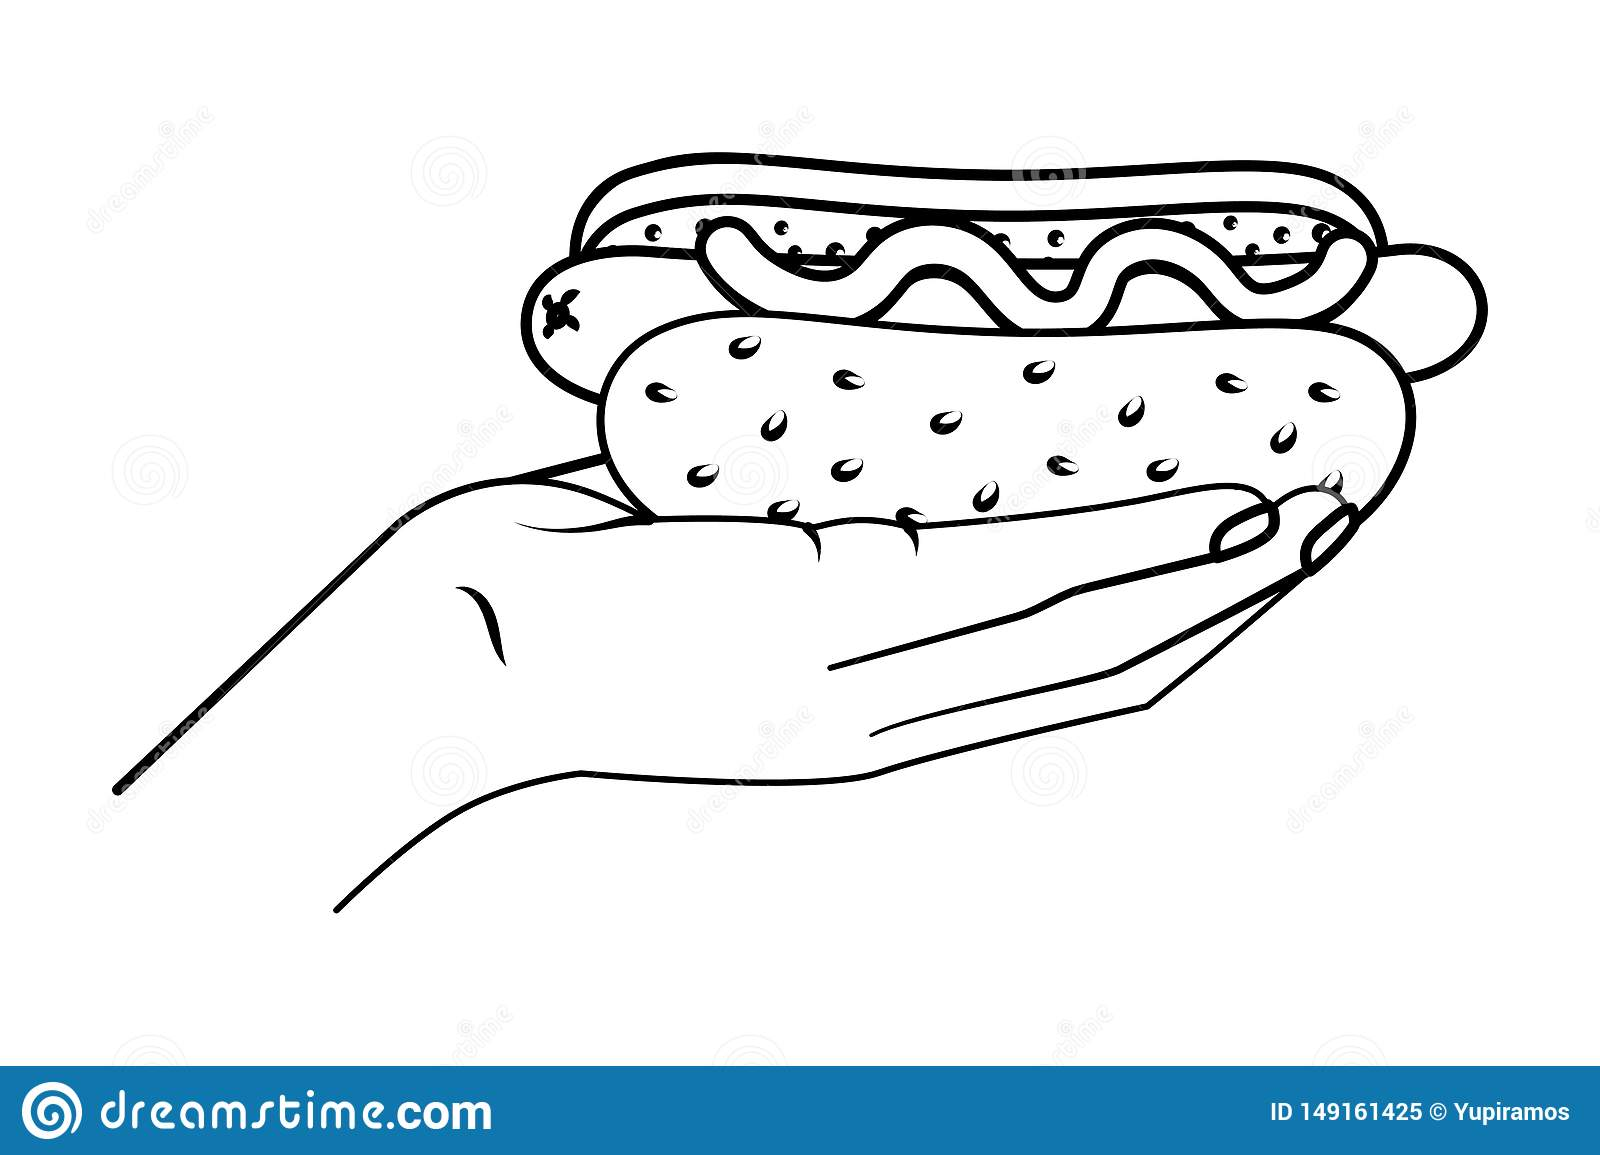 Hand Holding Hot Dog Black And White Stock Vector Illustration Of Holding Grilled 149161425